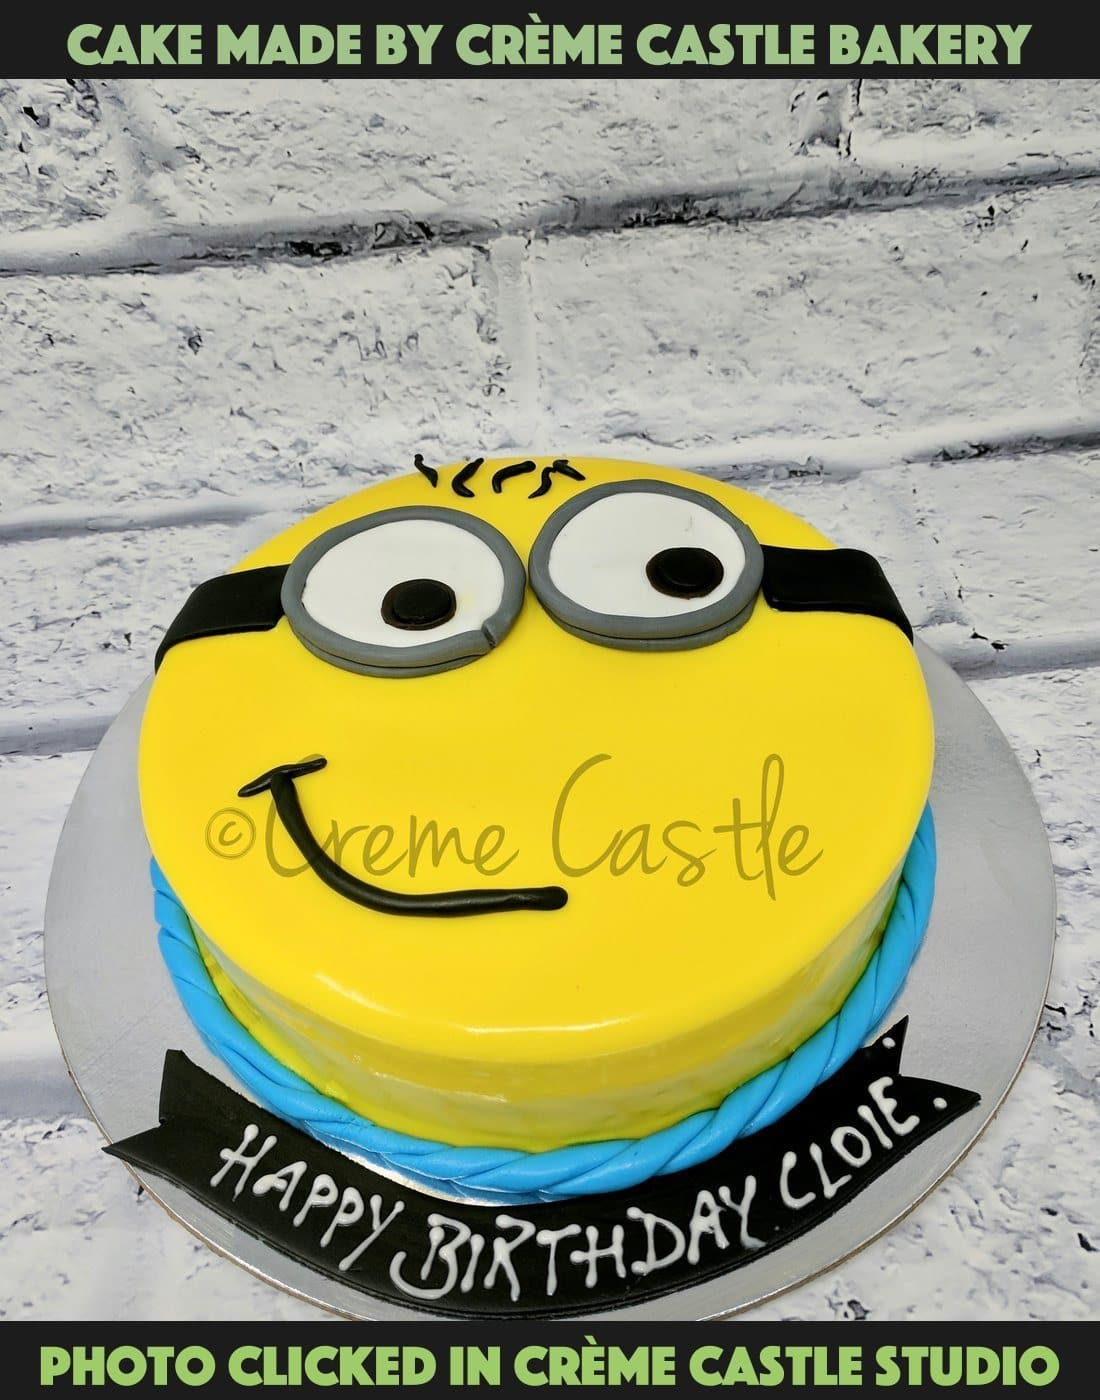 Incredible Smirking Minion Cake Birthday Cake For Kids Creme Castle Funny Birthday Cards Online Inifofree Goldxyz